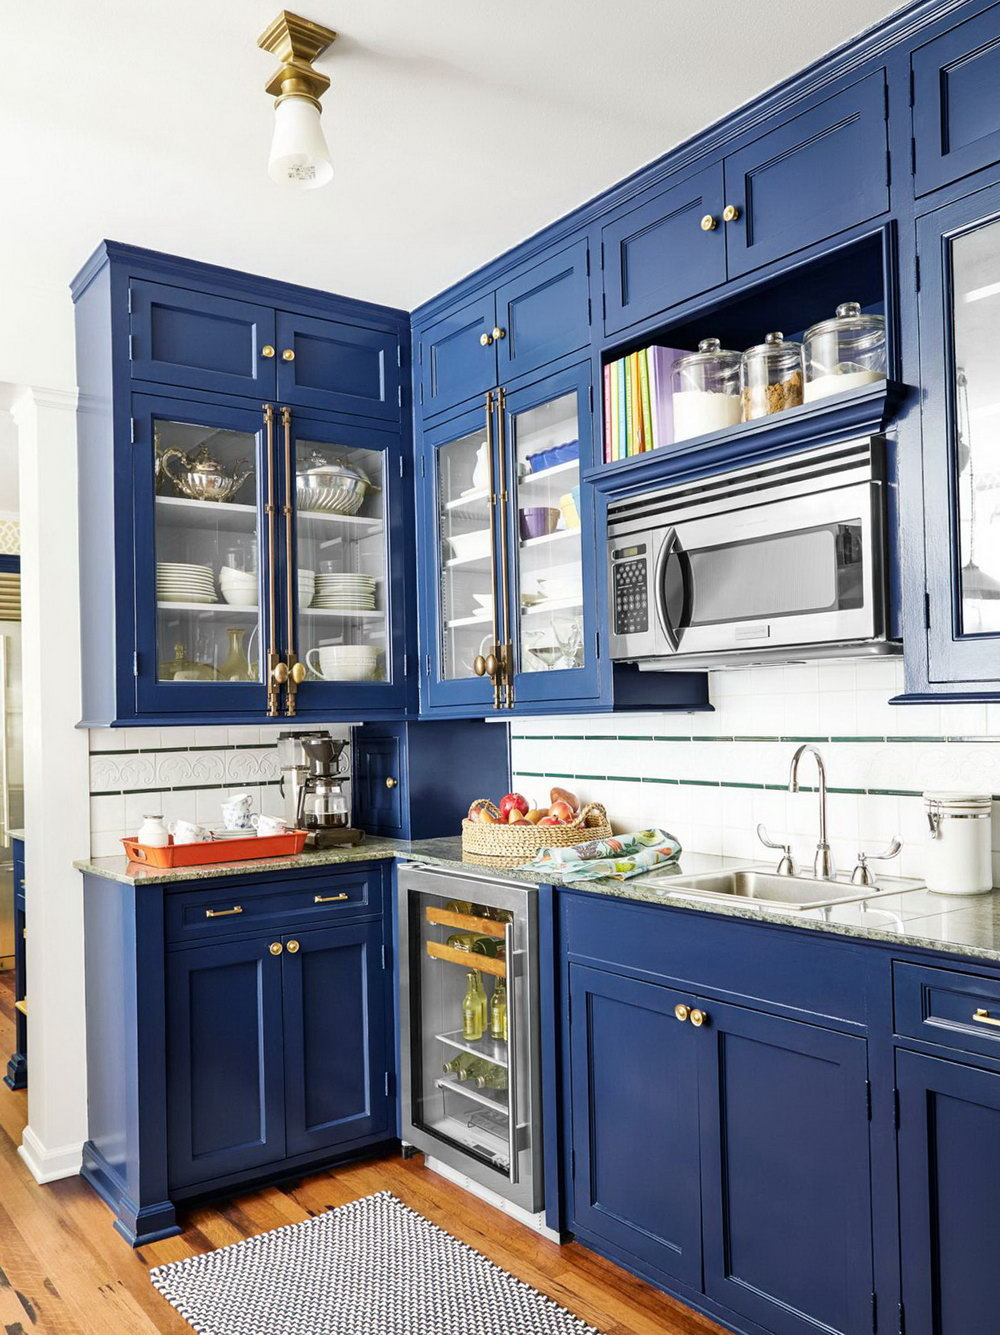 Cleaning Kitchen Cabinets To Paint